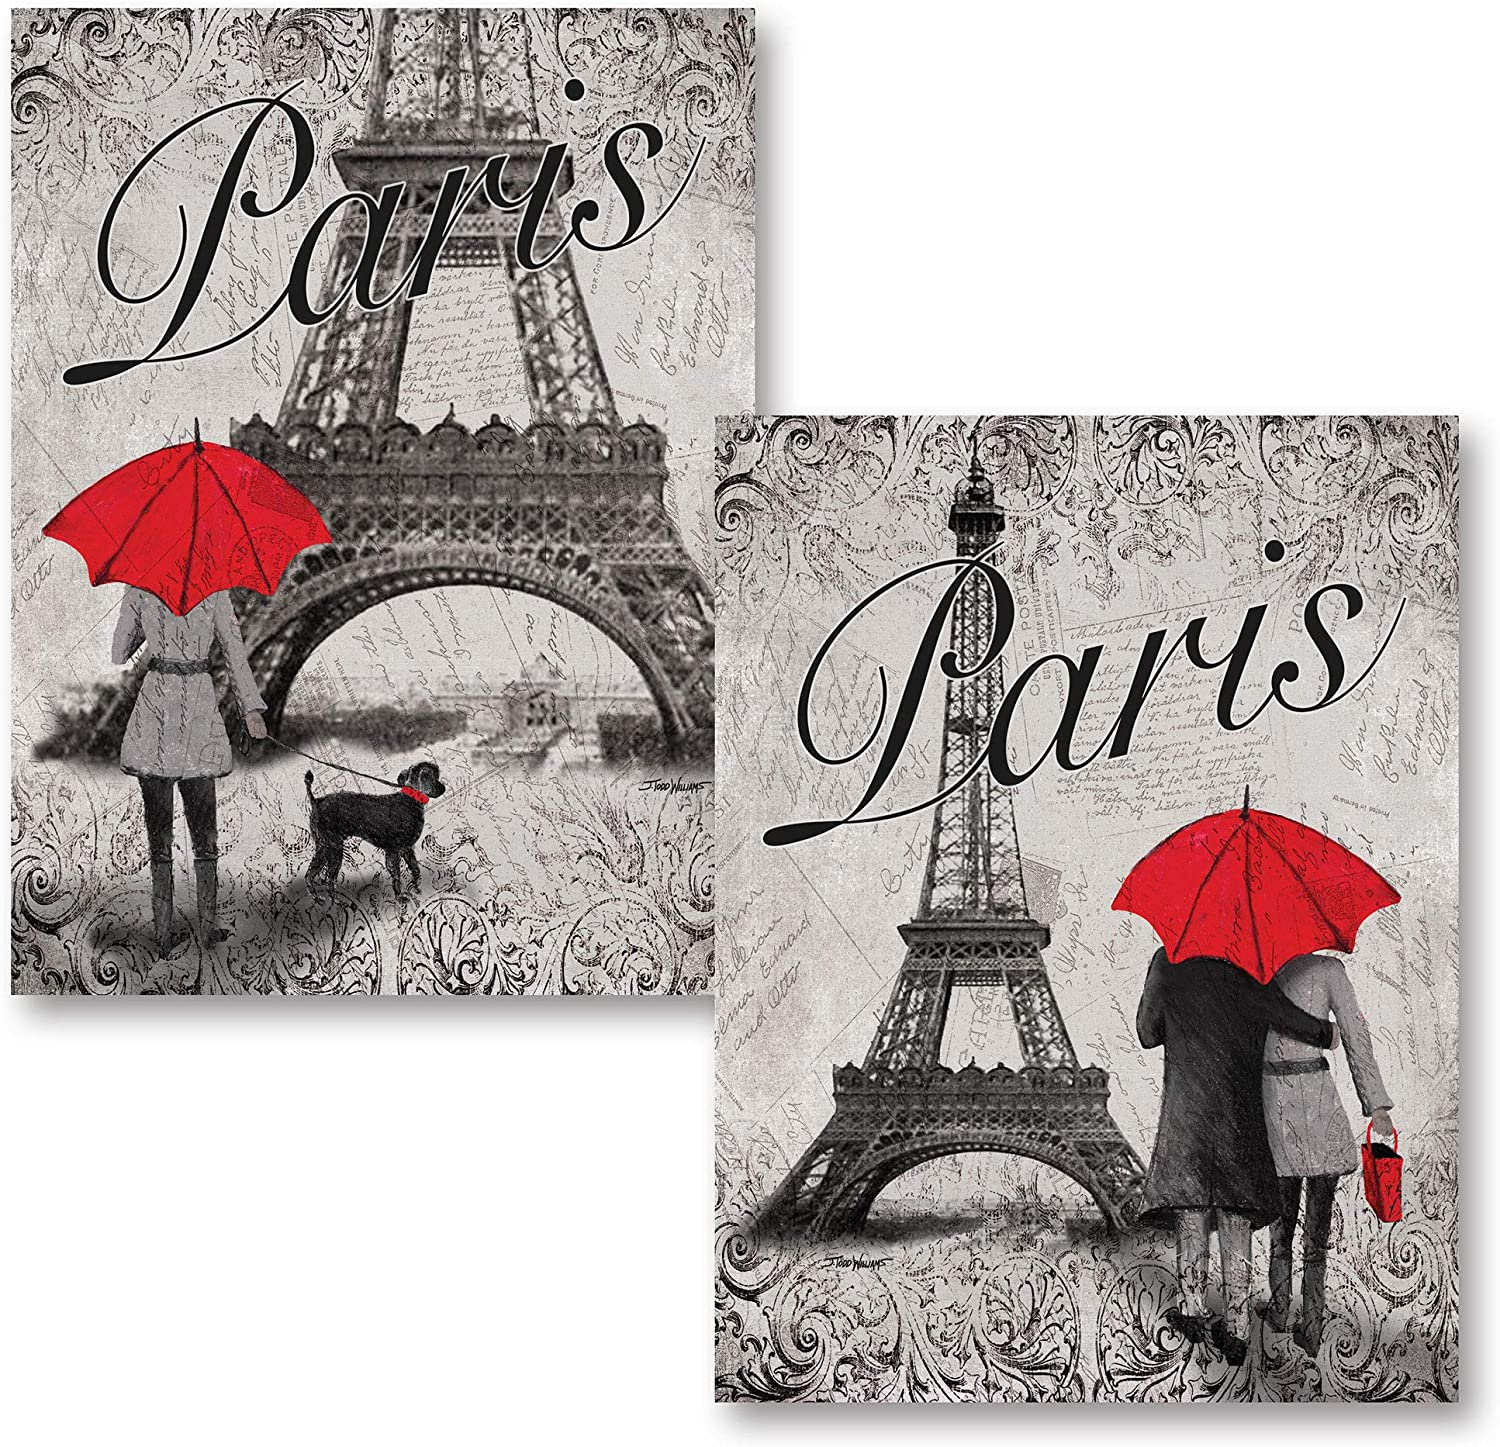 Gango Home Decor Strolling in Paris- Two Beautiful 11 x 14 in Poster Prints Eiffel Tower and Red Umbrella Set